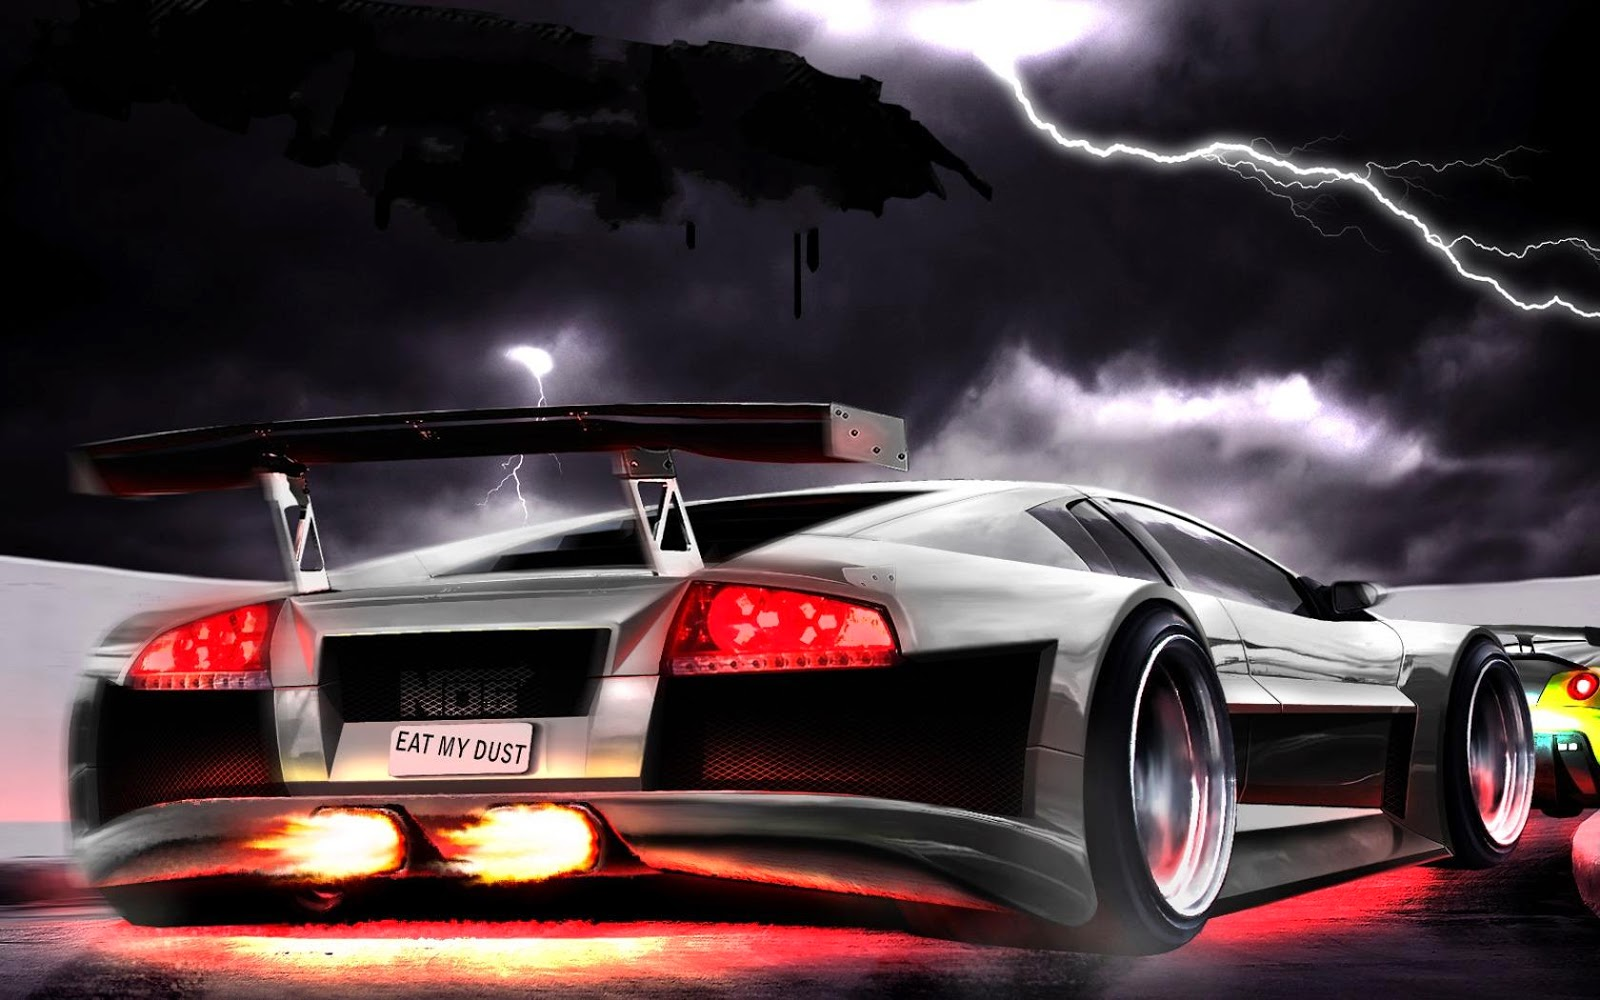 3d Hd Wallpapers Cars Amazing View Cars Wallpaper